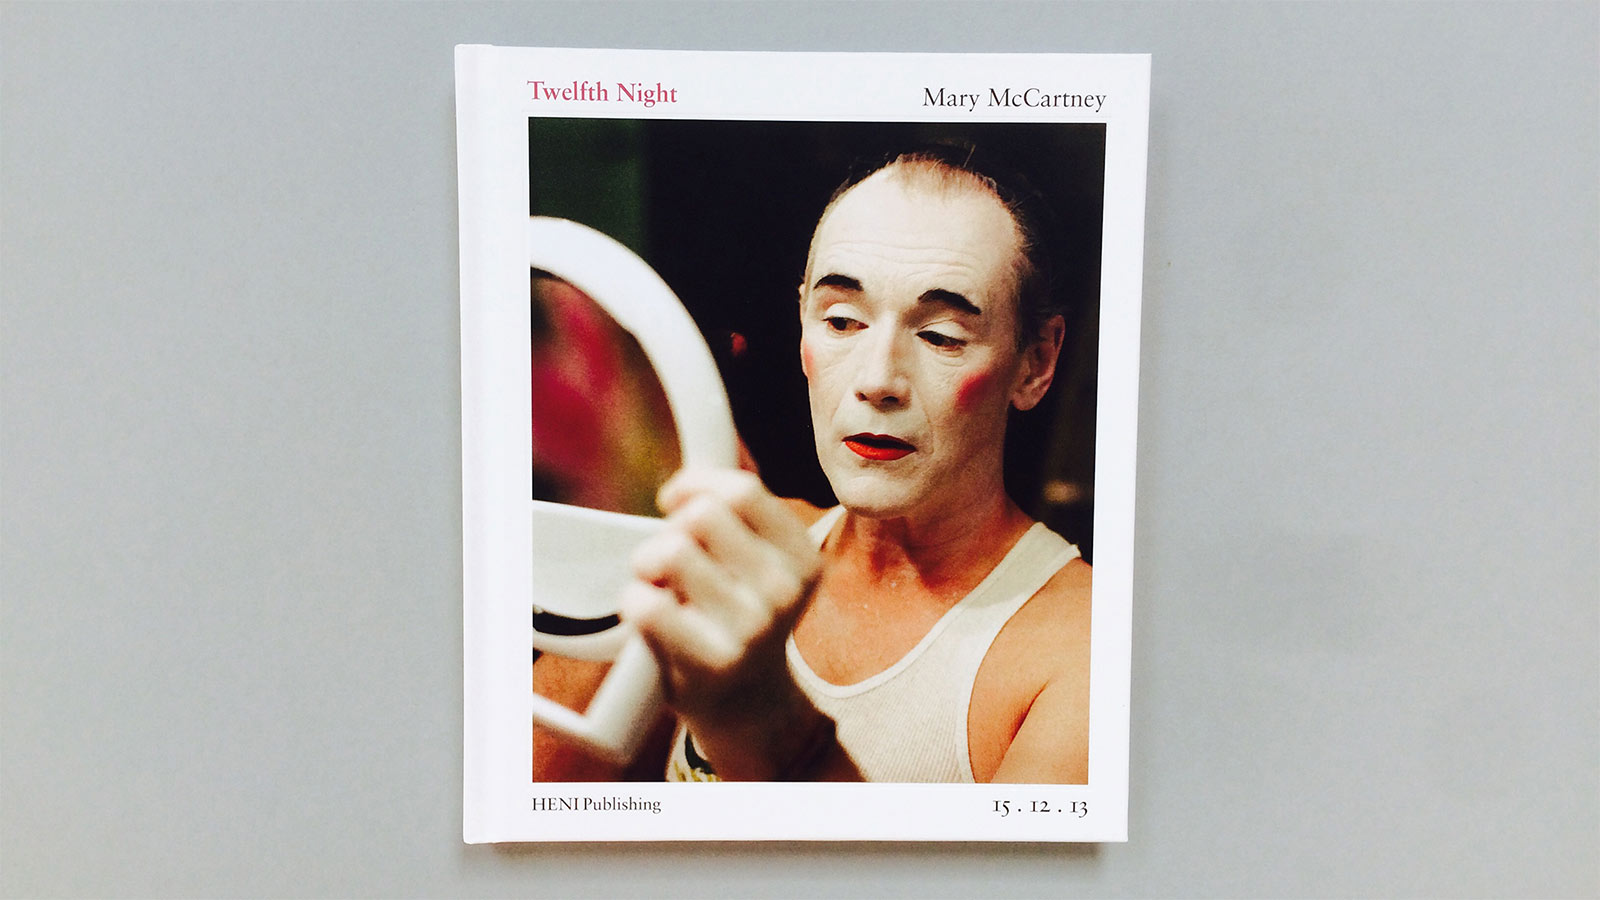 Twelfth Night by Mary McCartney: photography book